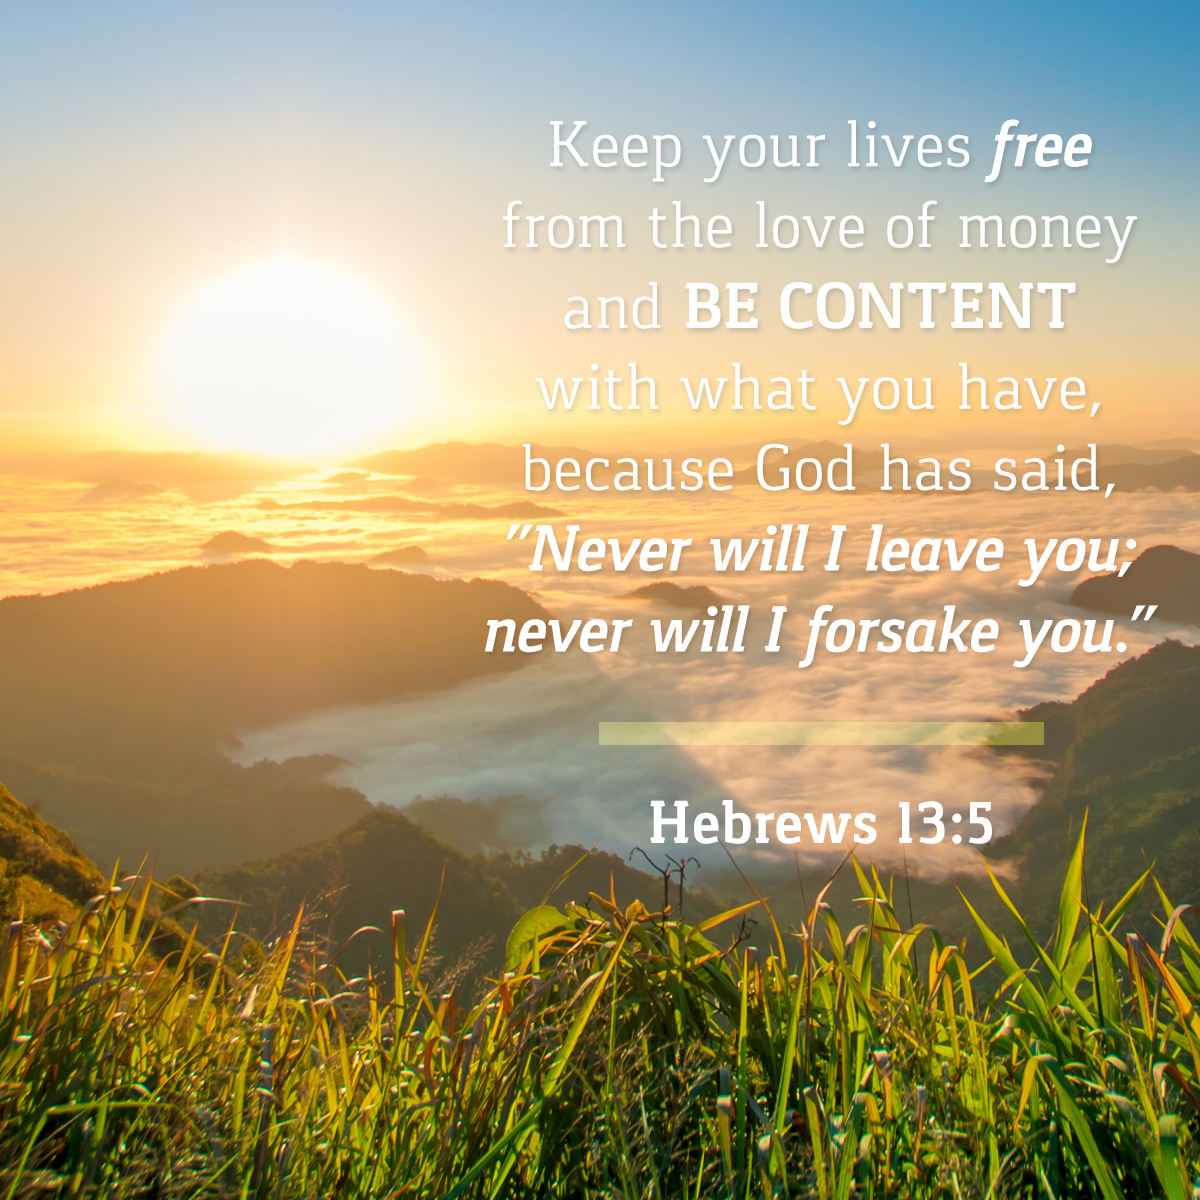 Hebrews 13:5 - Daily Verse